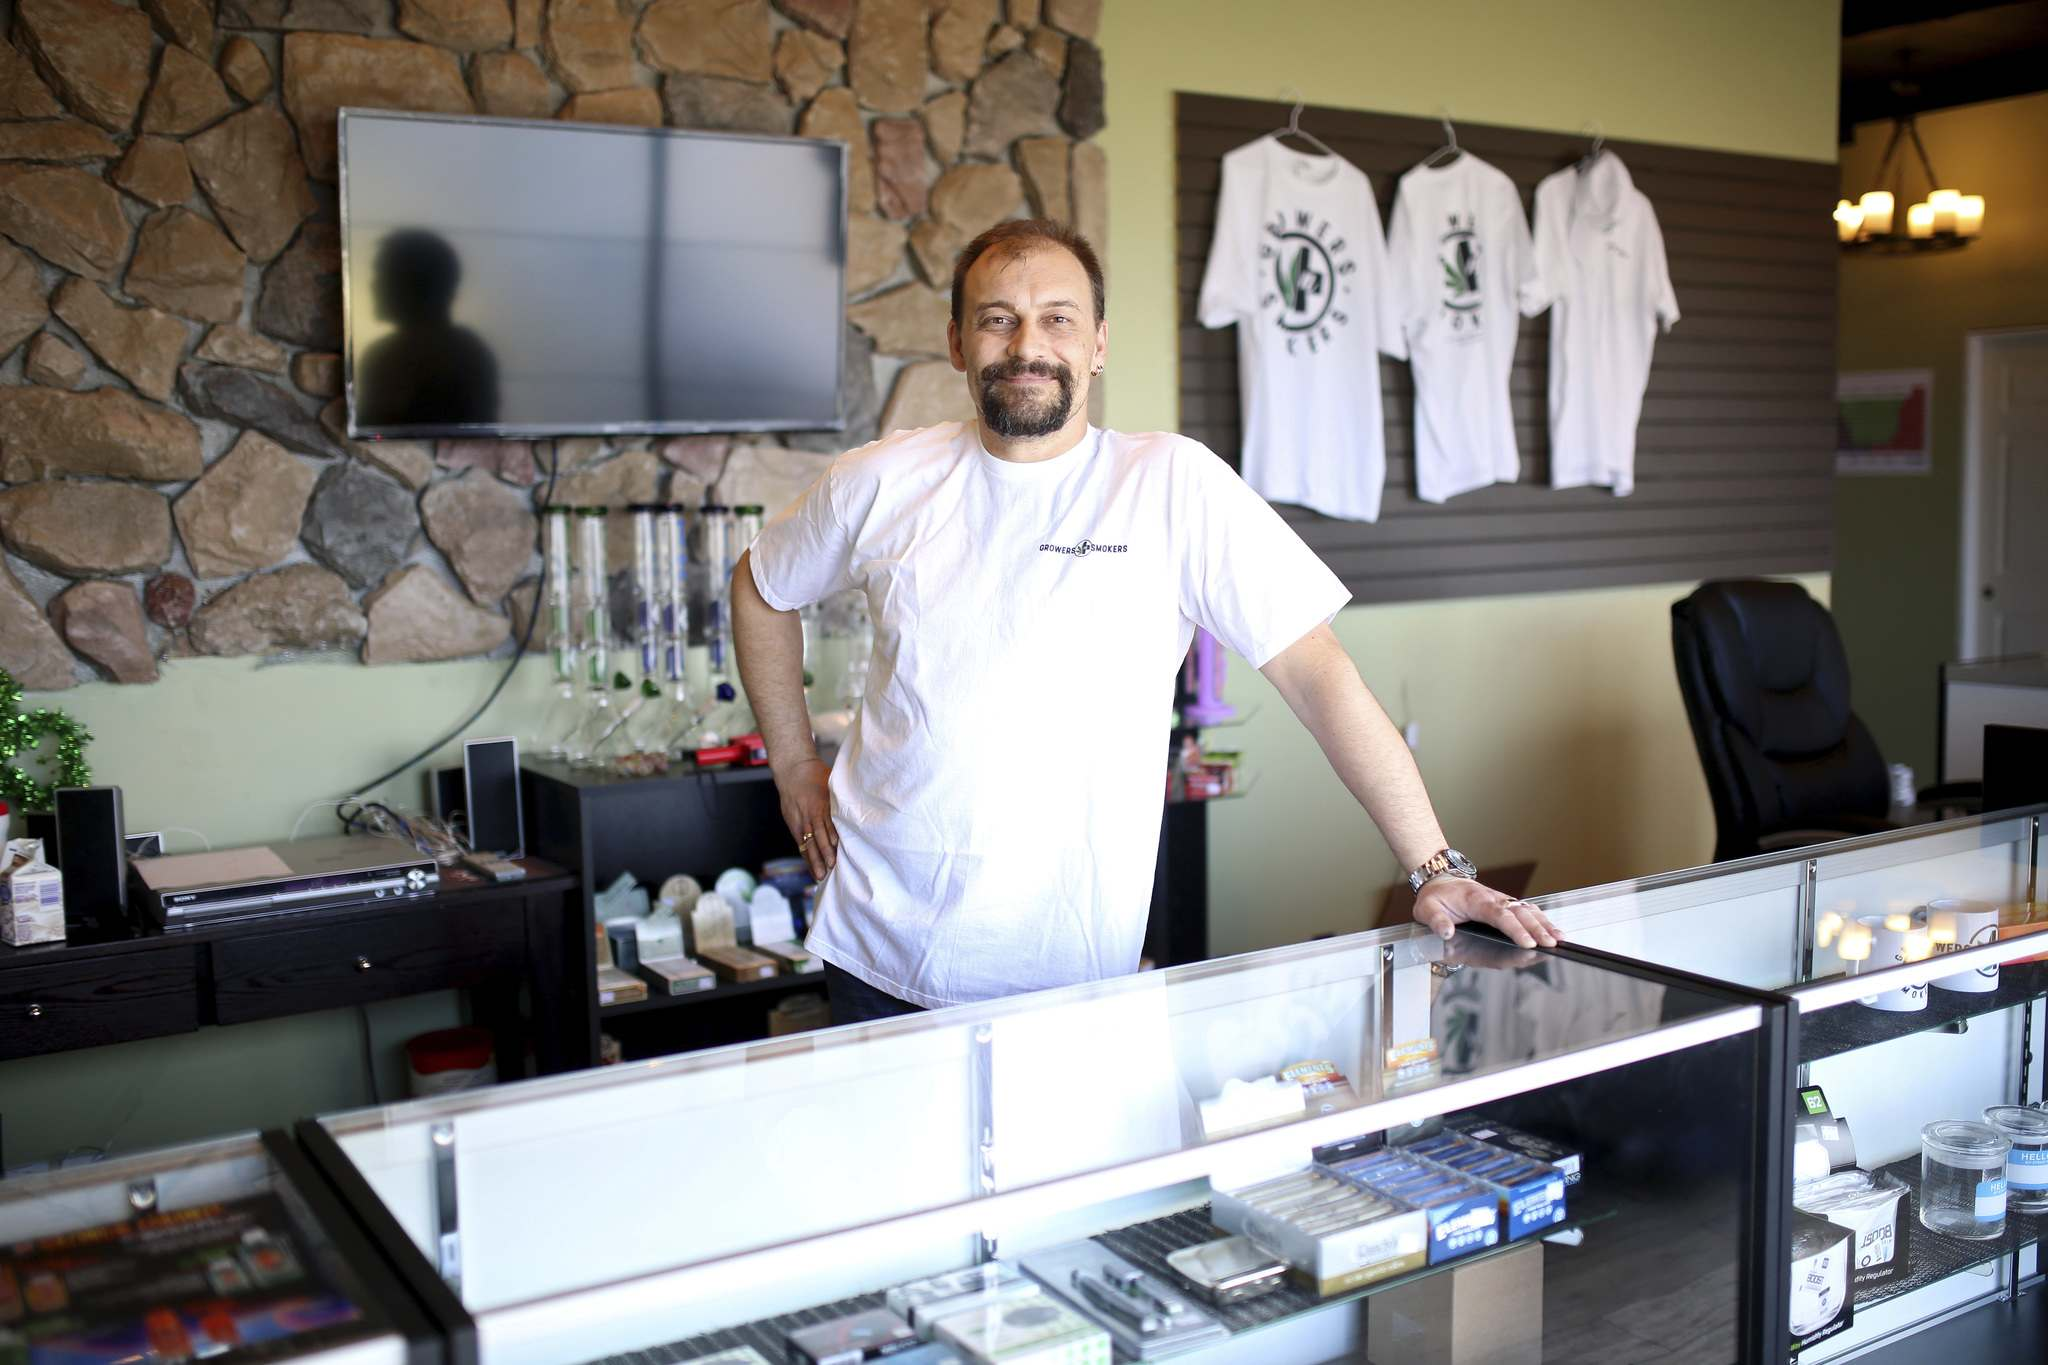 Even though the provincial government plans to open the retail cannabis market to new players in the future, Rick Macl, owner of Growers and Smokers in Brandon, is pessimistic about his chances of competing. (Tim Smith / Brandon Sun files</p>